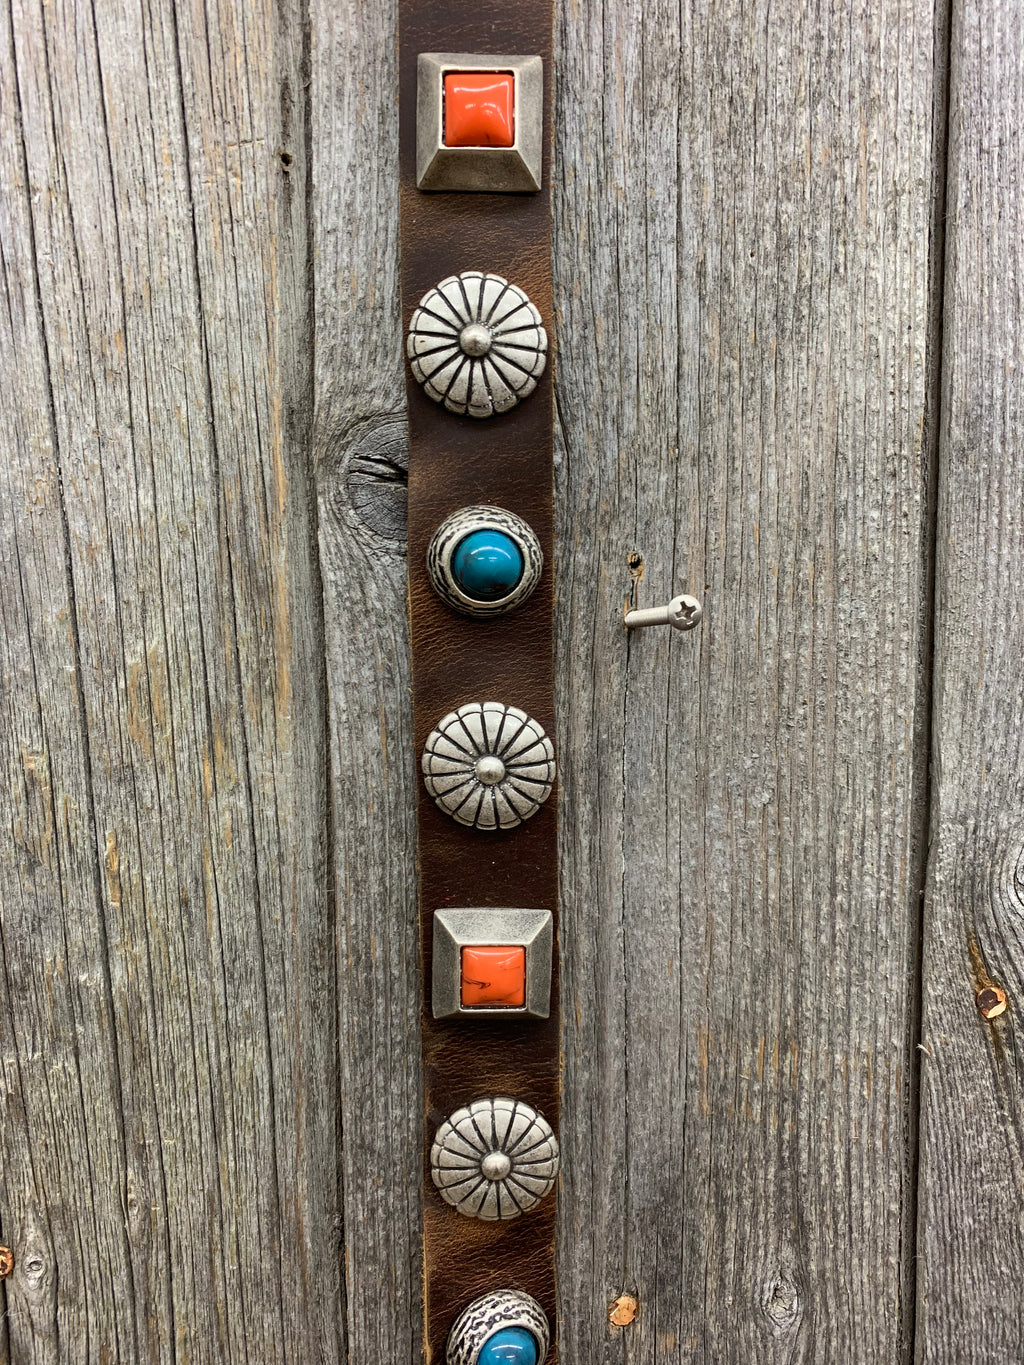 2233 LR Turquoise, Orange, and Sunburst Concho Belt